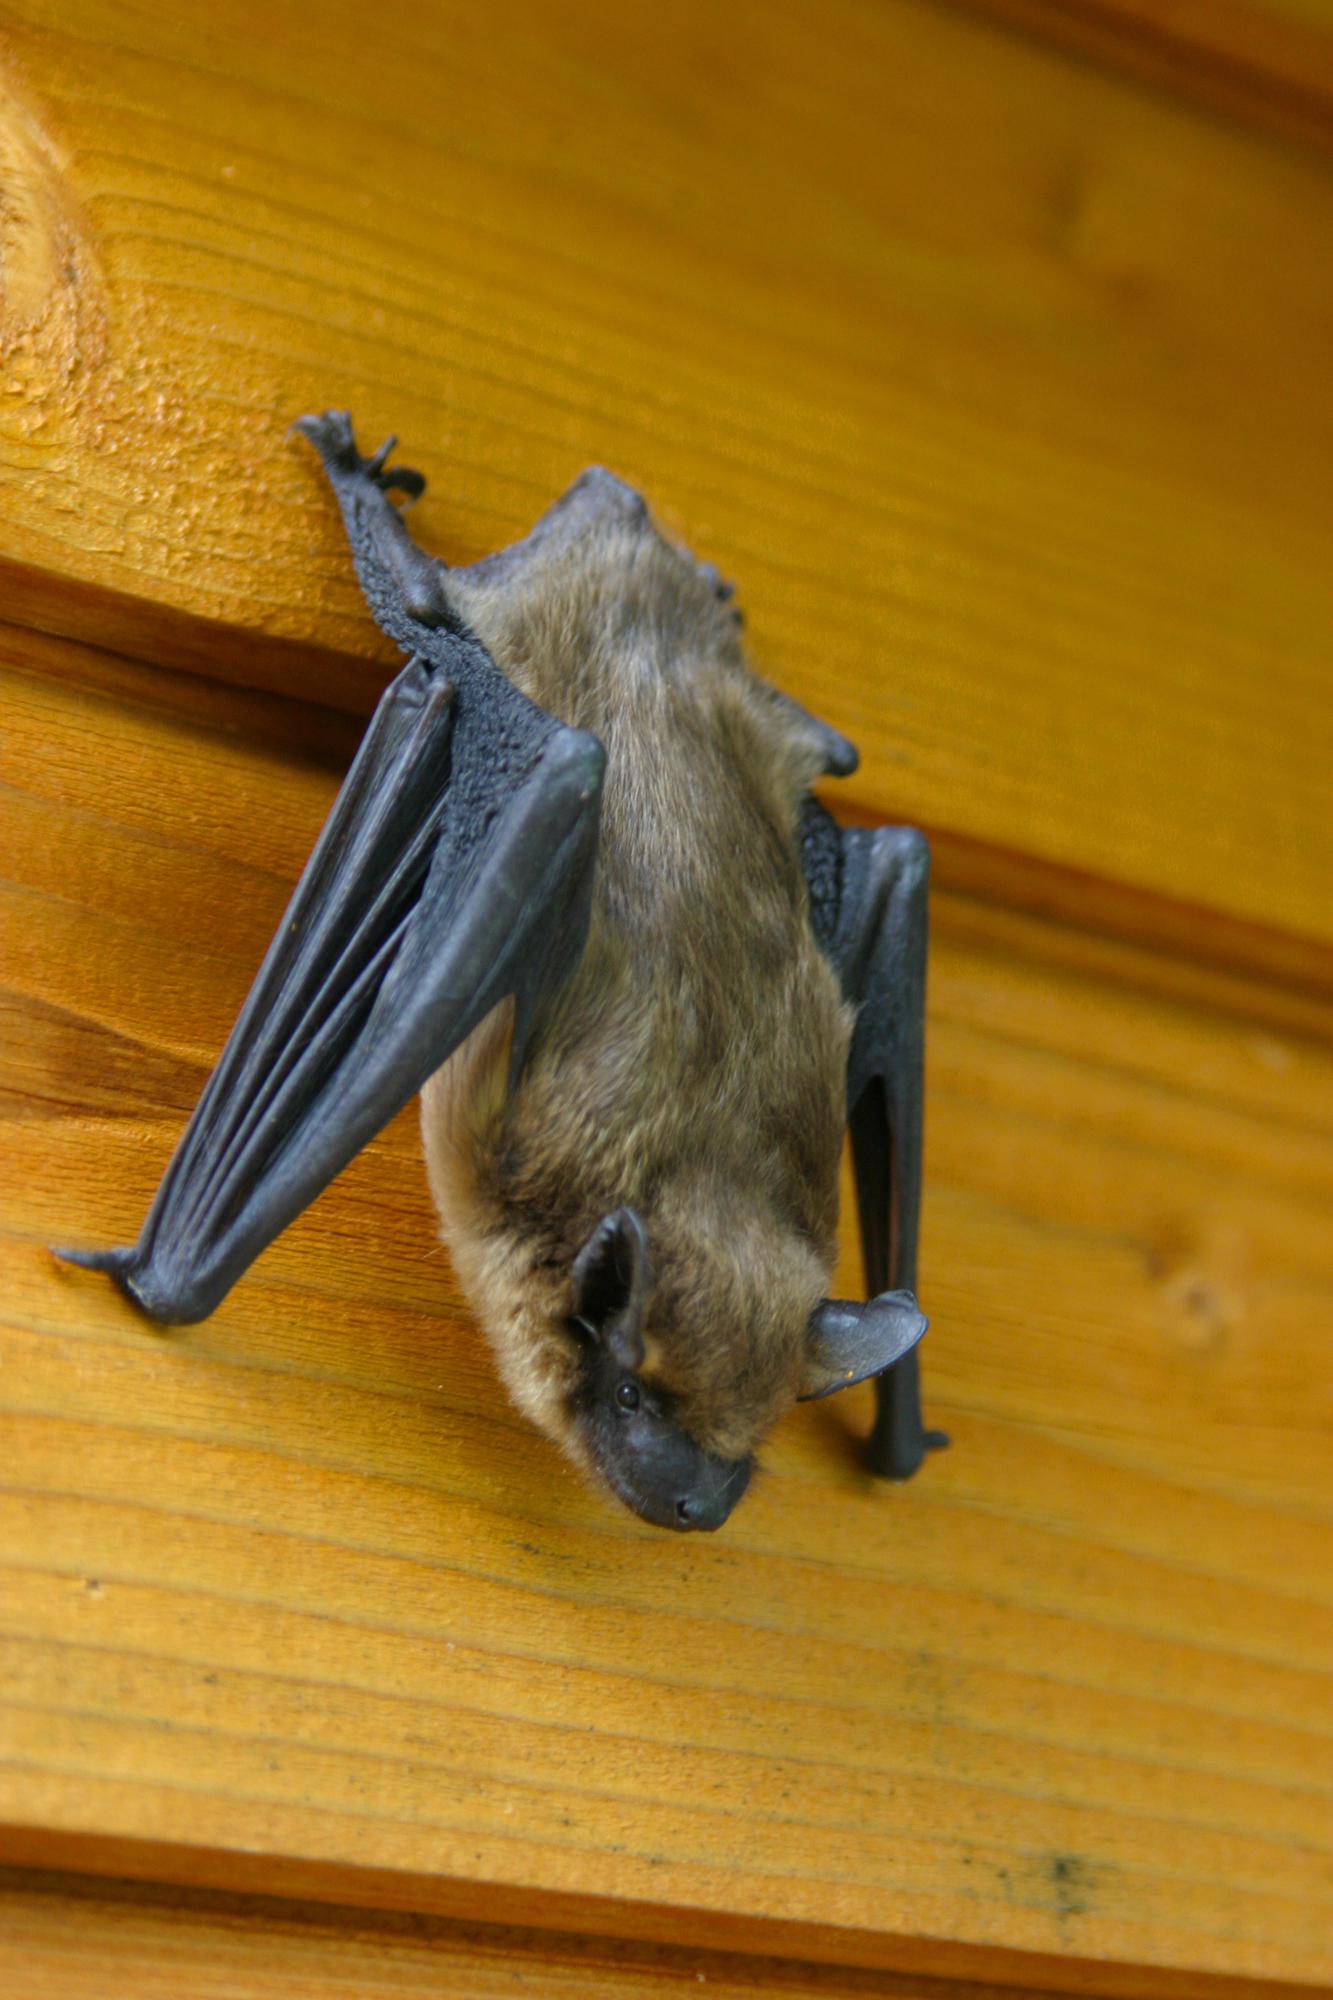 Do Not Let Bats Set Up Housekeeping in Your Attic!